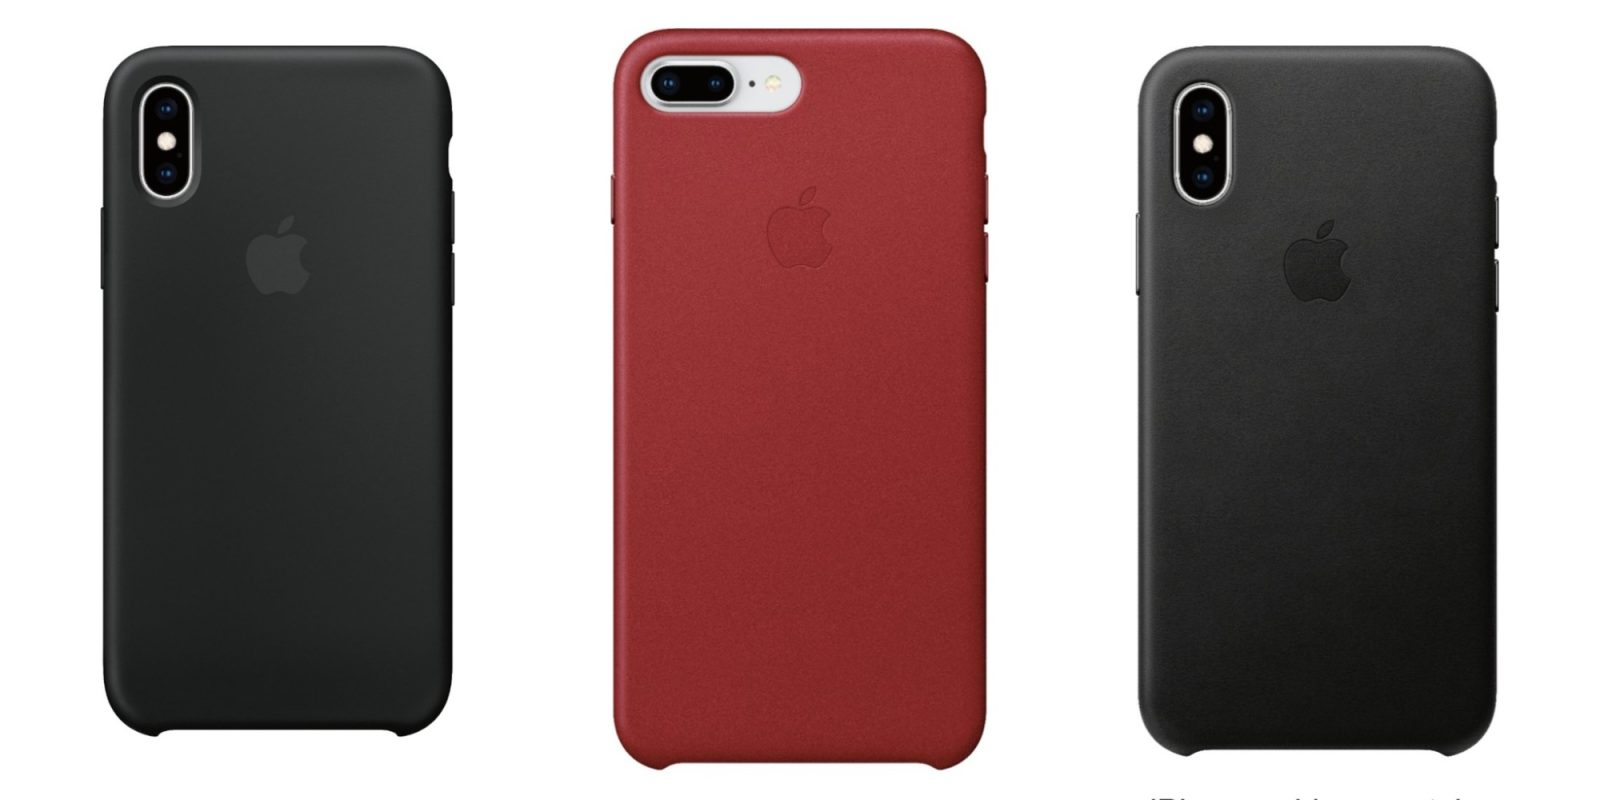 Apple's Silicone iPhone XS/Max Case drops to $20, Leather $25, more from $17